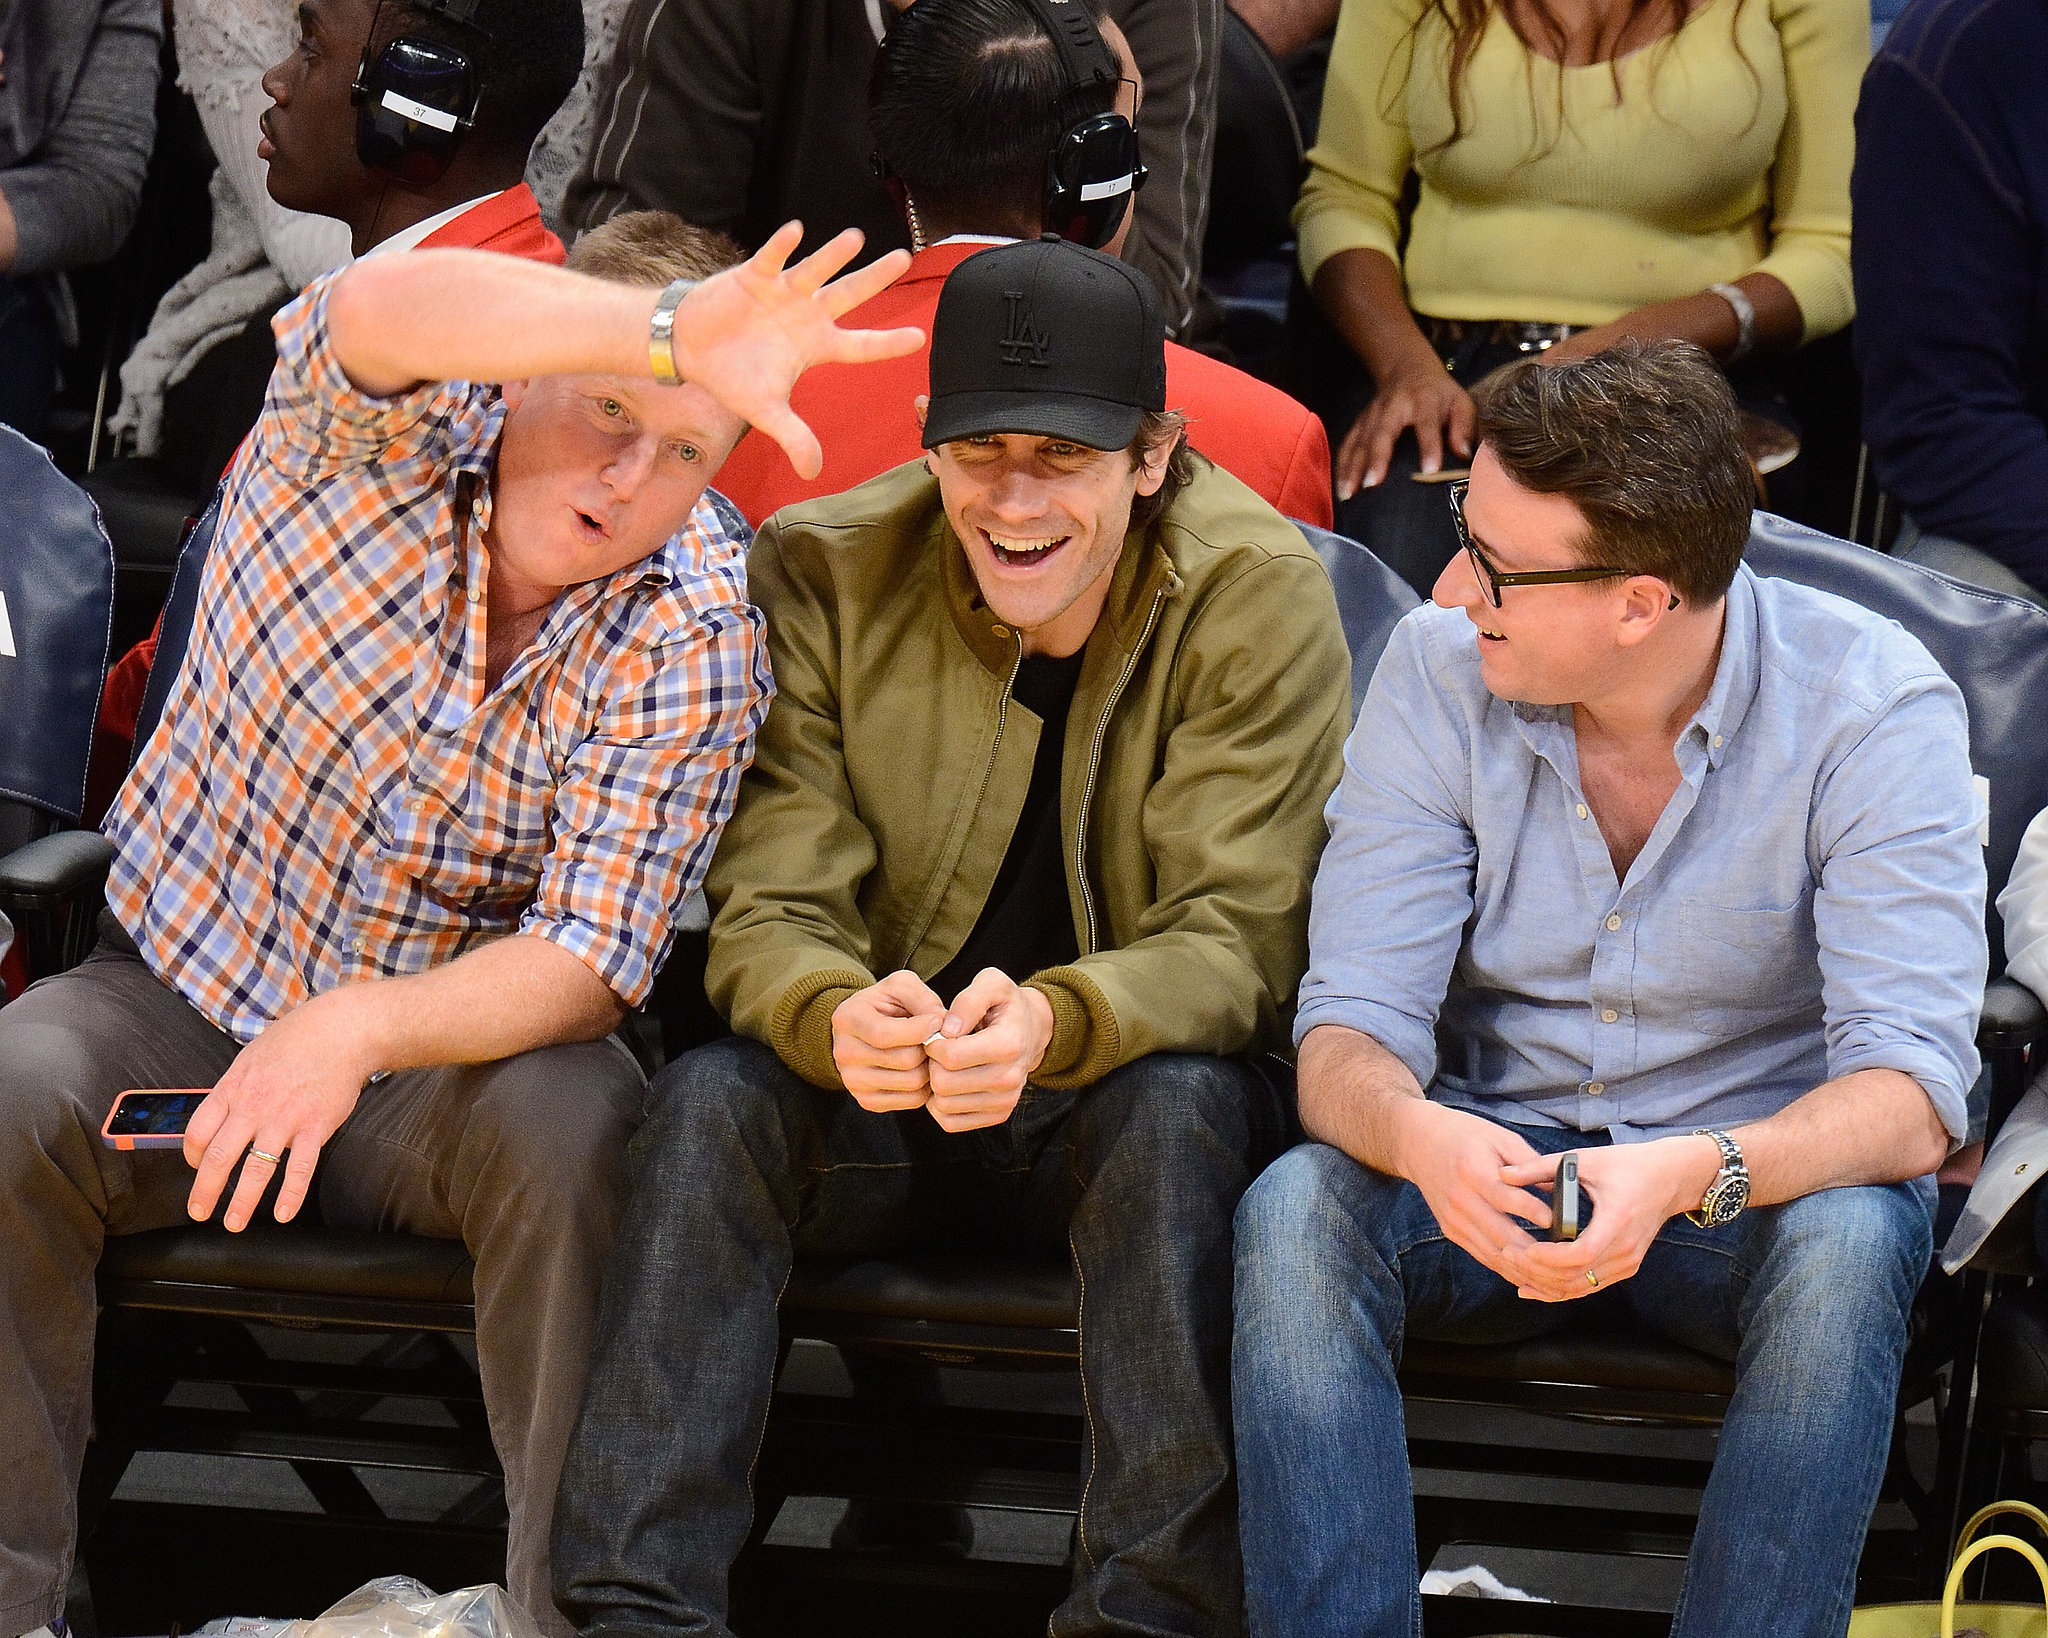 Jake Gyllenhaal felt the LA Lakers spirit with pals when the team played the Minnesota Timberwolves in November 2013.